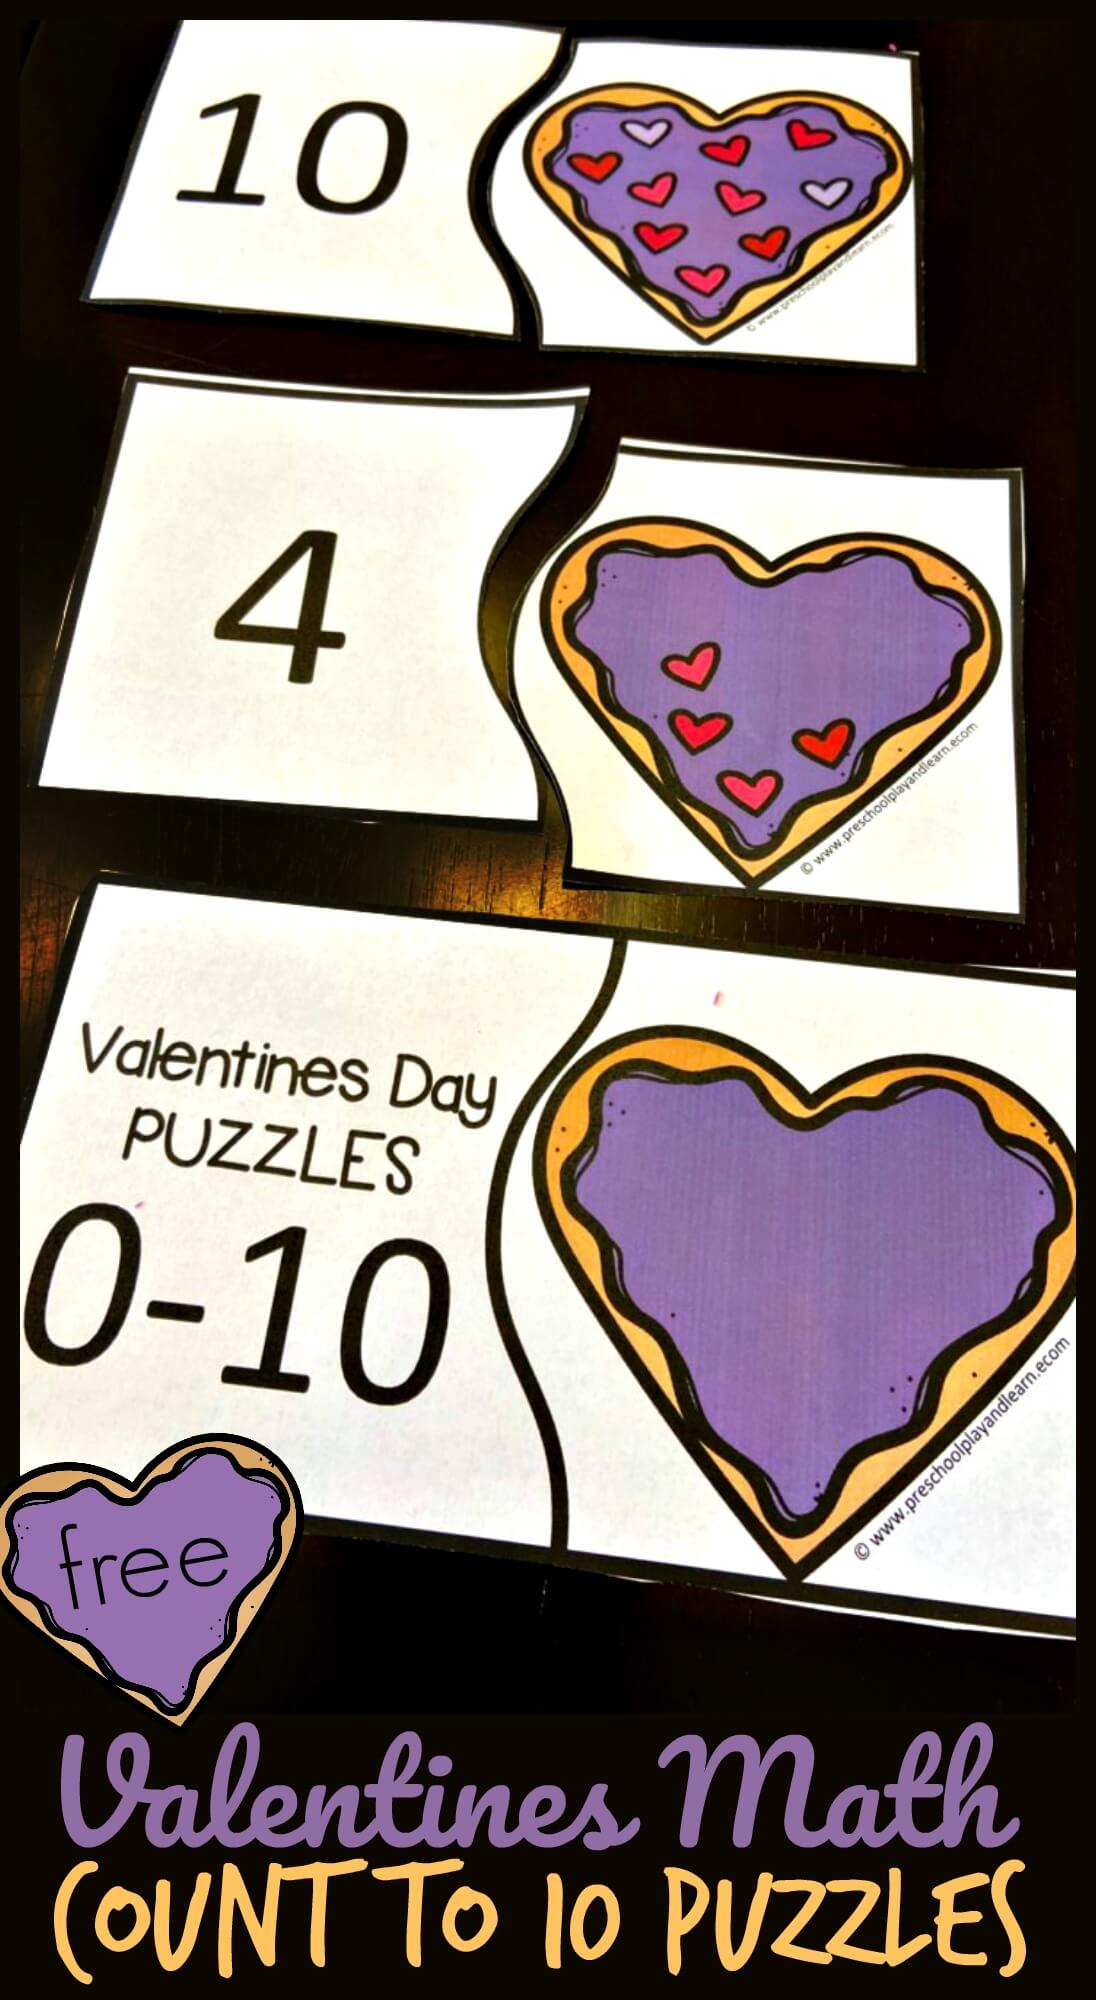 Valentines Math Count To 10 Puzzles